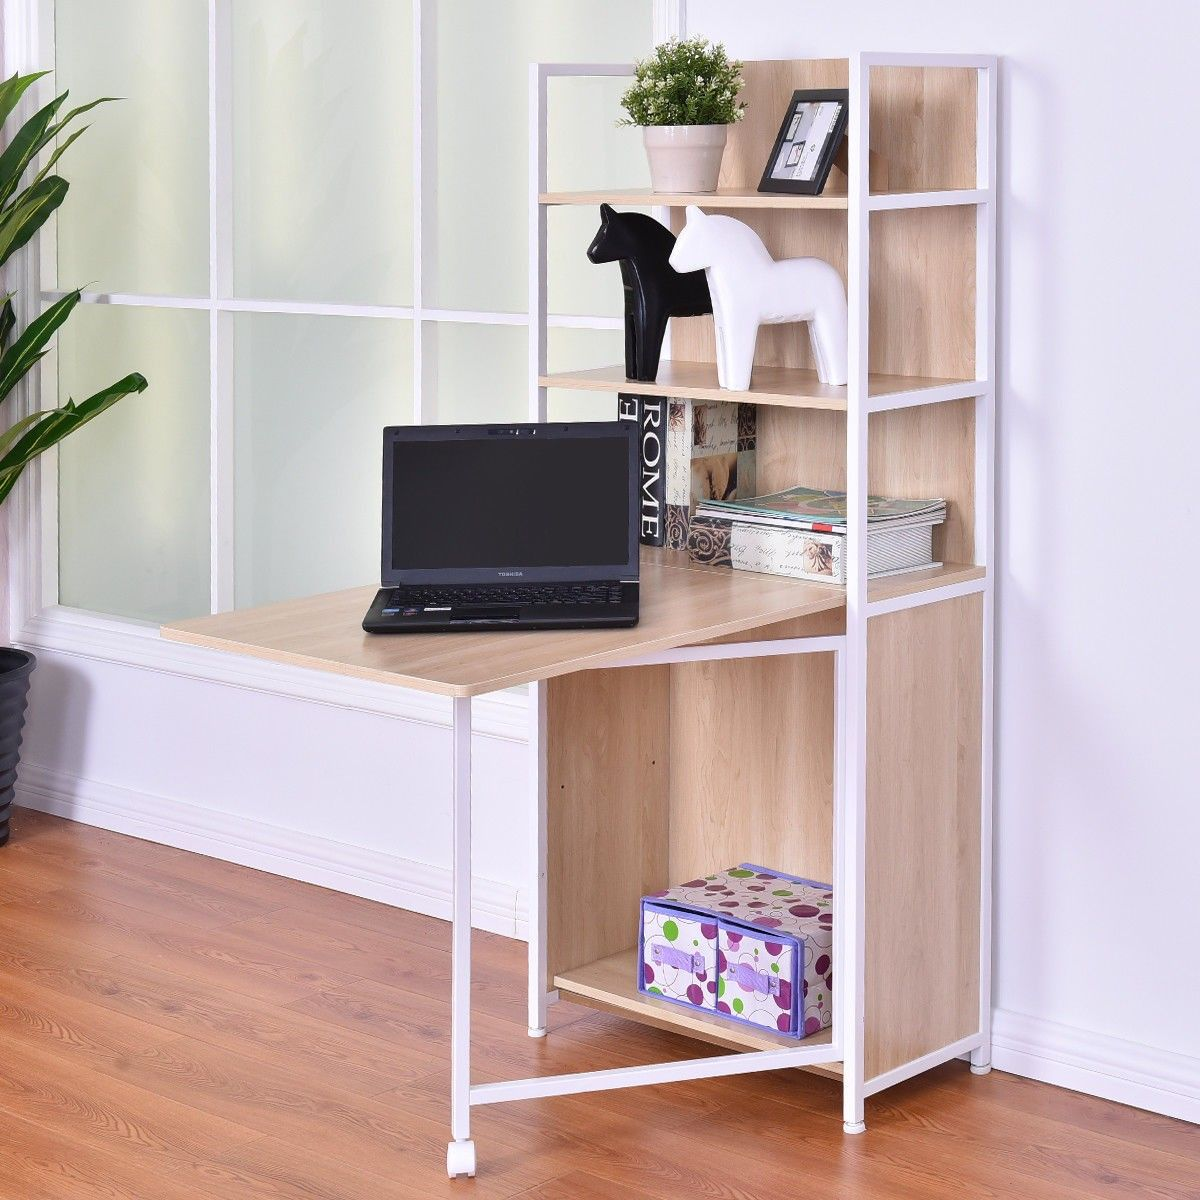 2 In 1 Foldable Convertible Desk With Cabinet And Bookshelf Convertible Desk Computer Desk With Shelves Bookshelf Desk